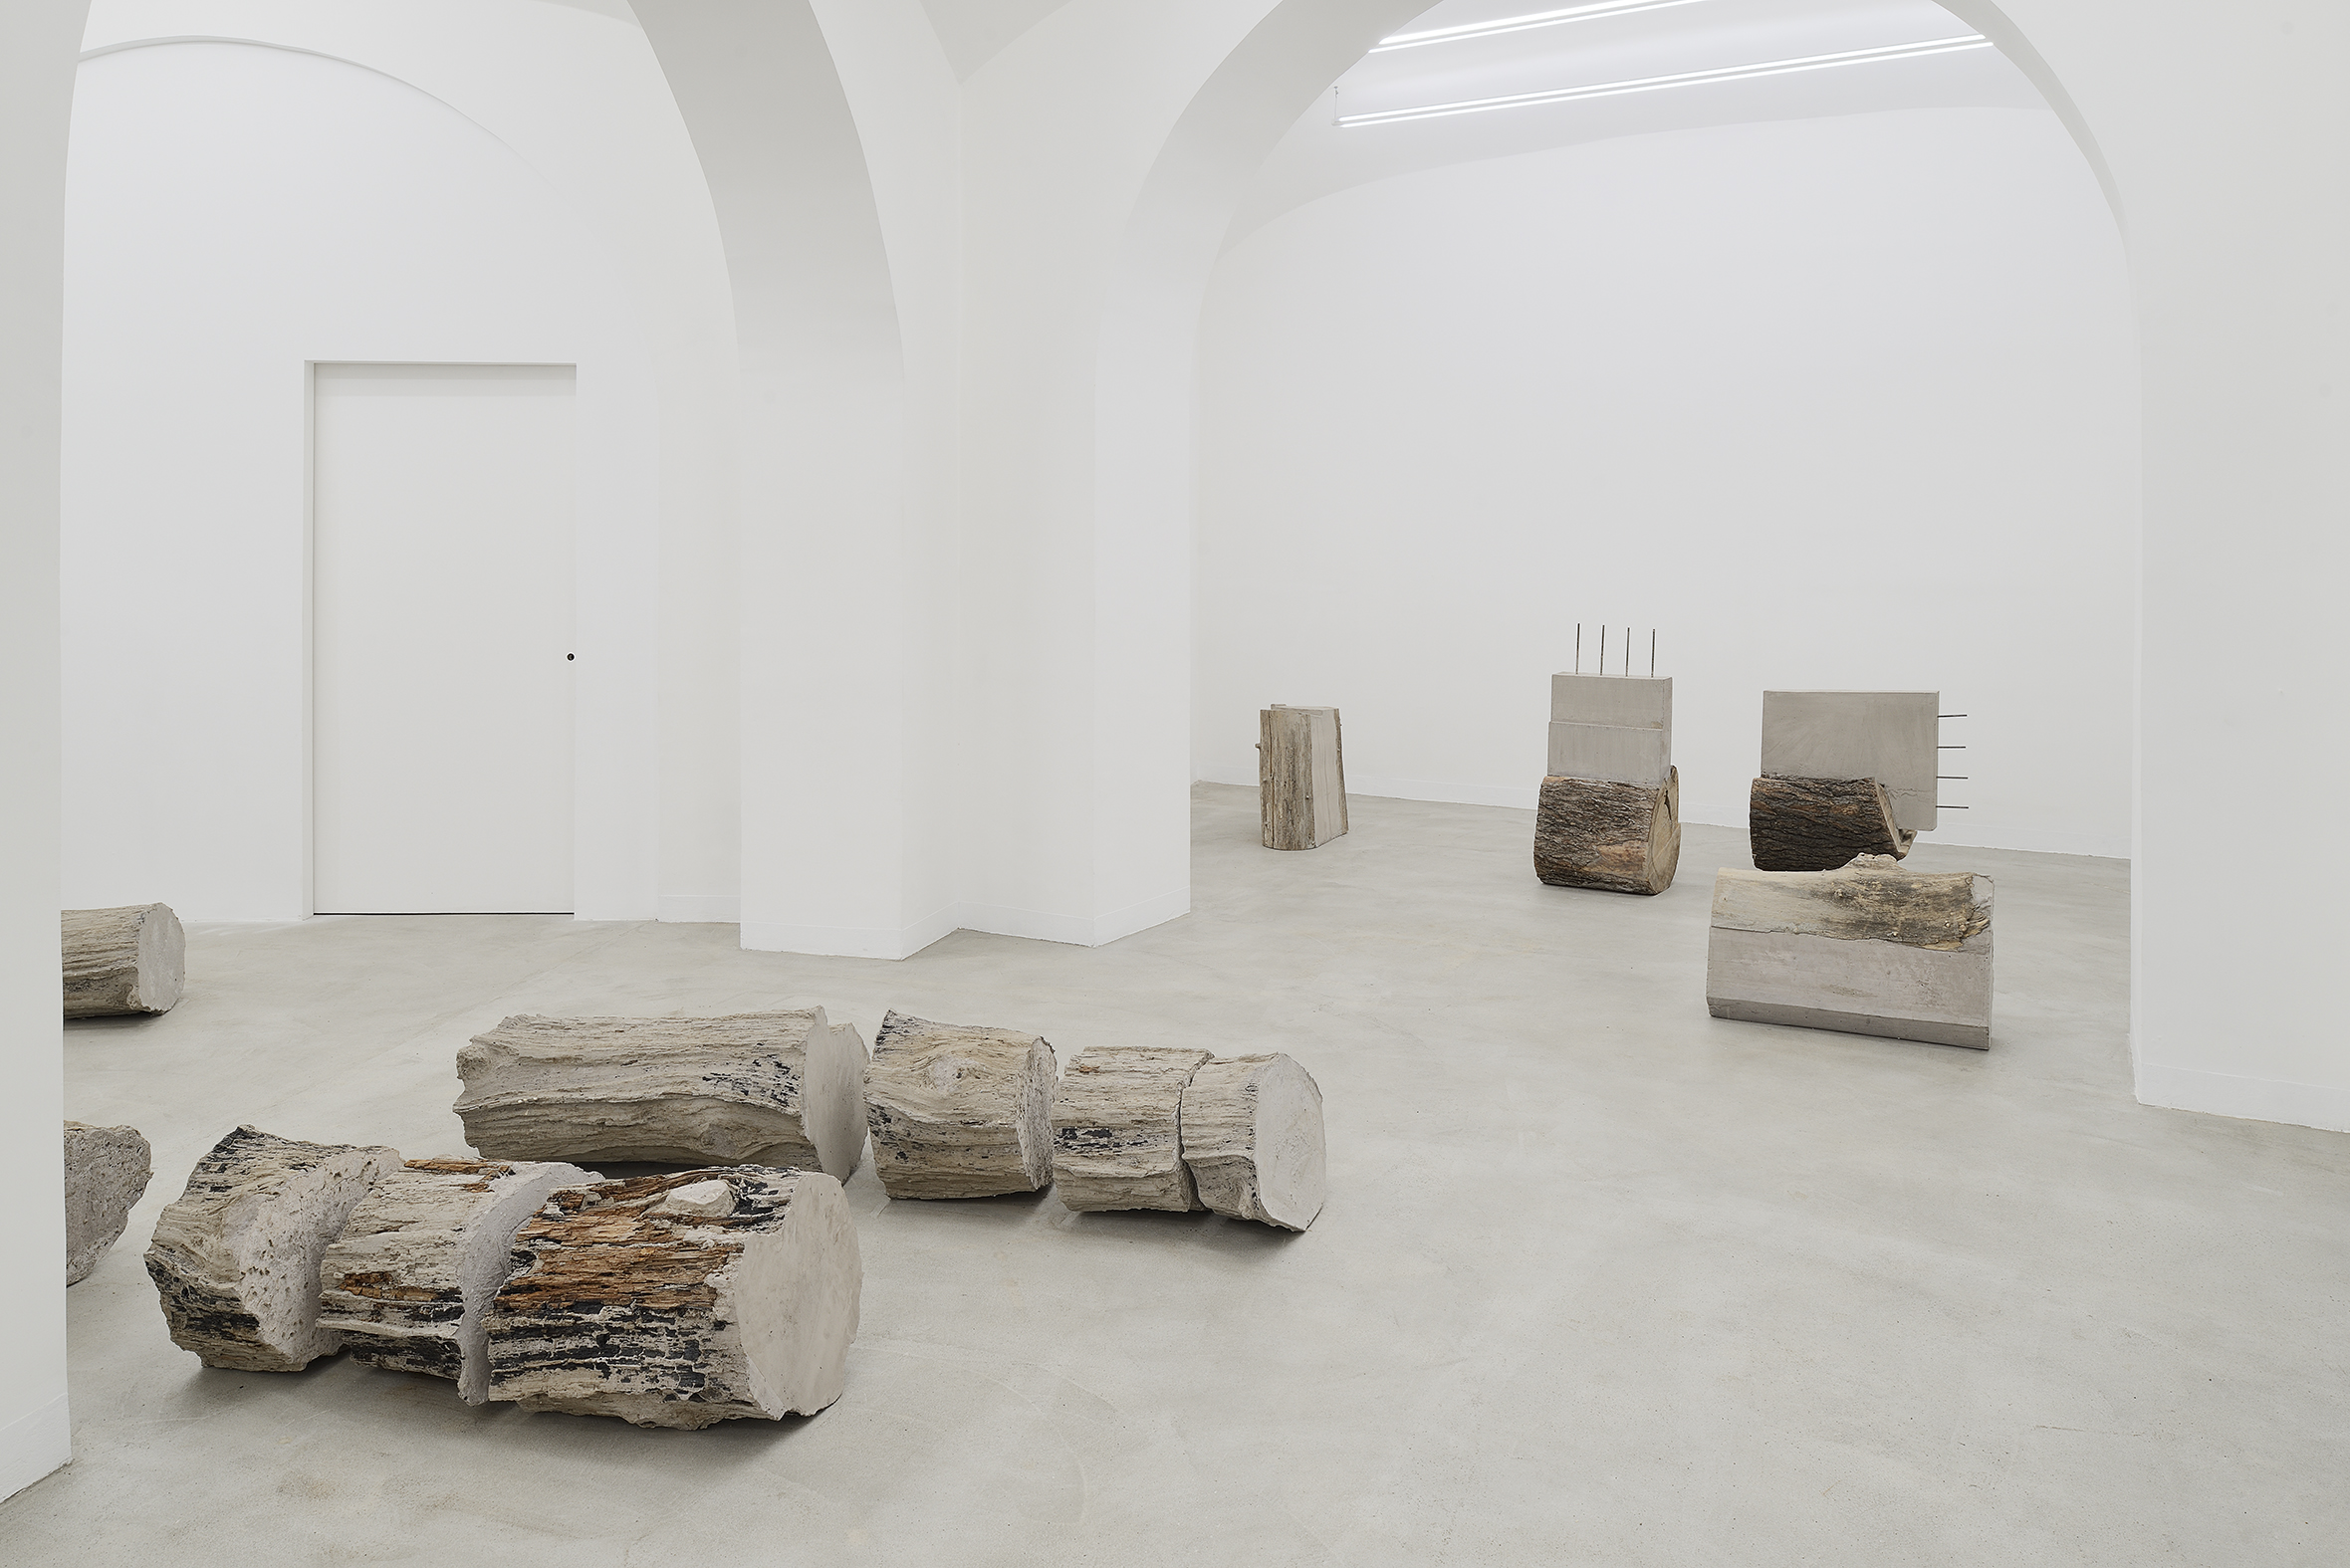 Installation view Stefano Canto - Carie, 2021. Courtesy of the artist and Matèria, Roma. Photo Roberto Apa